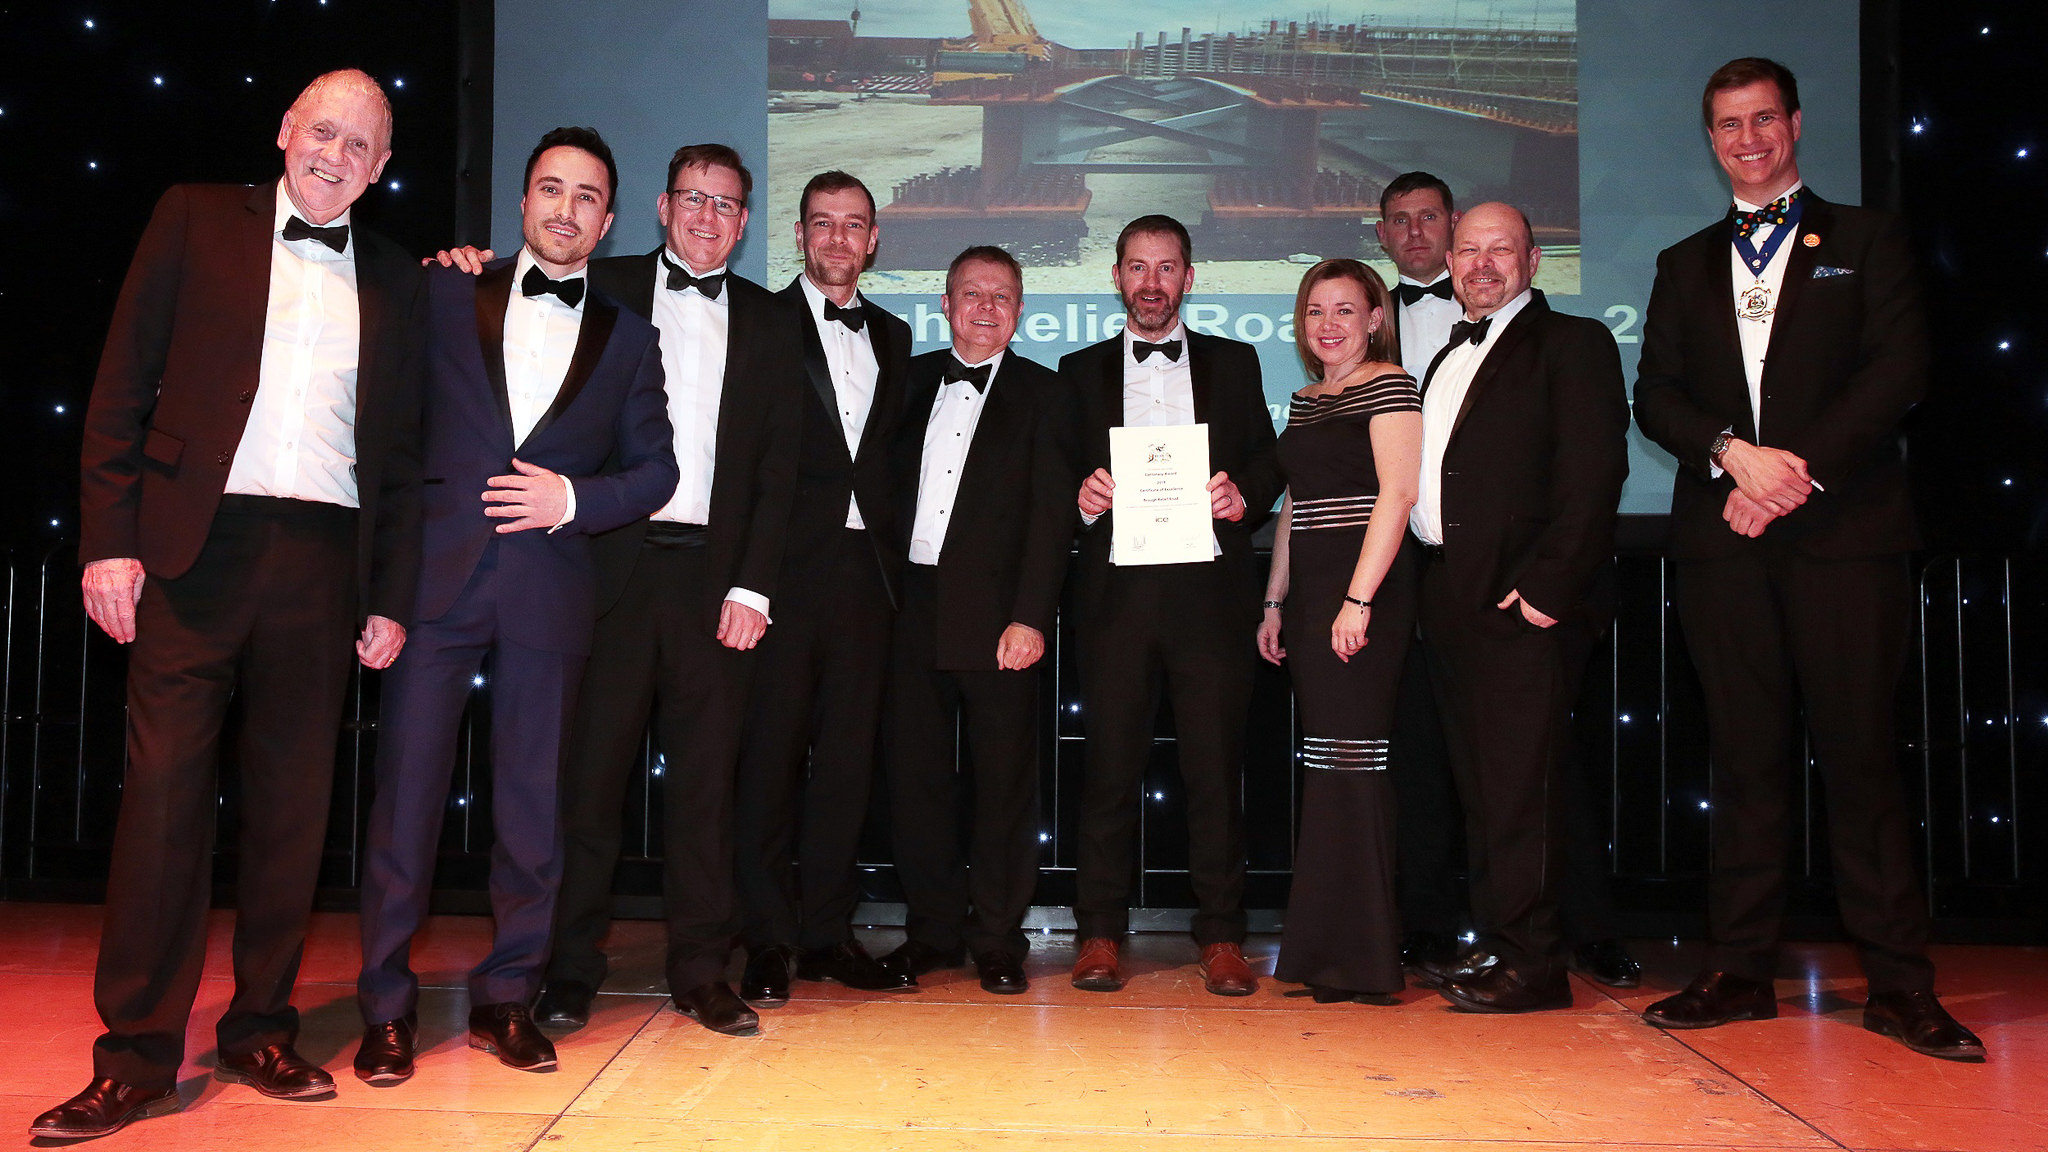 Brough South relief road wins award